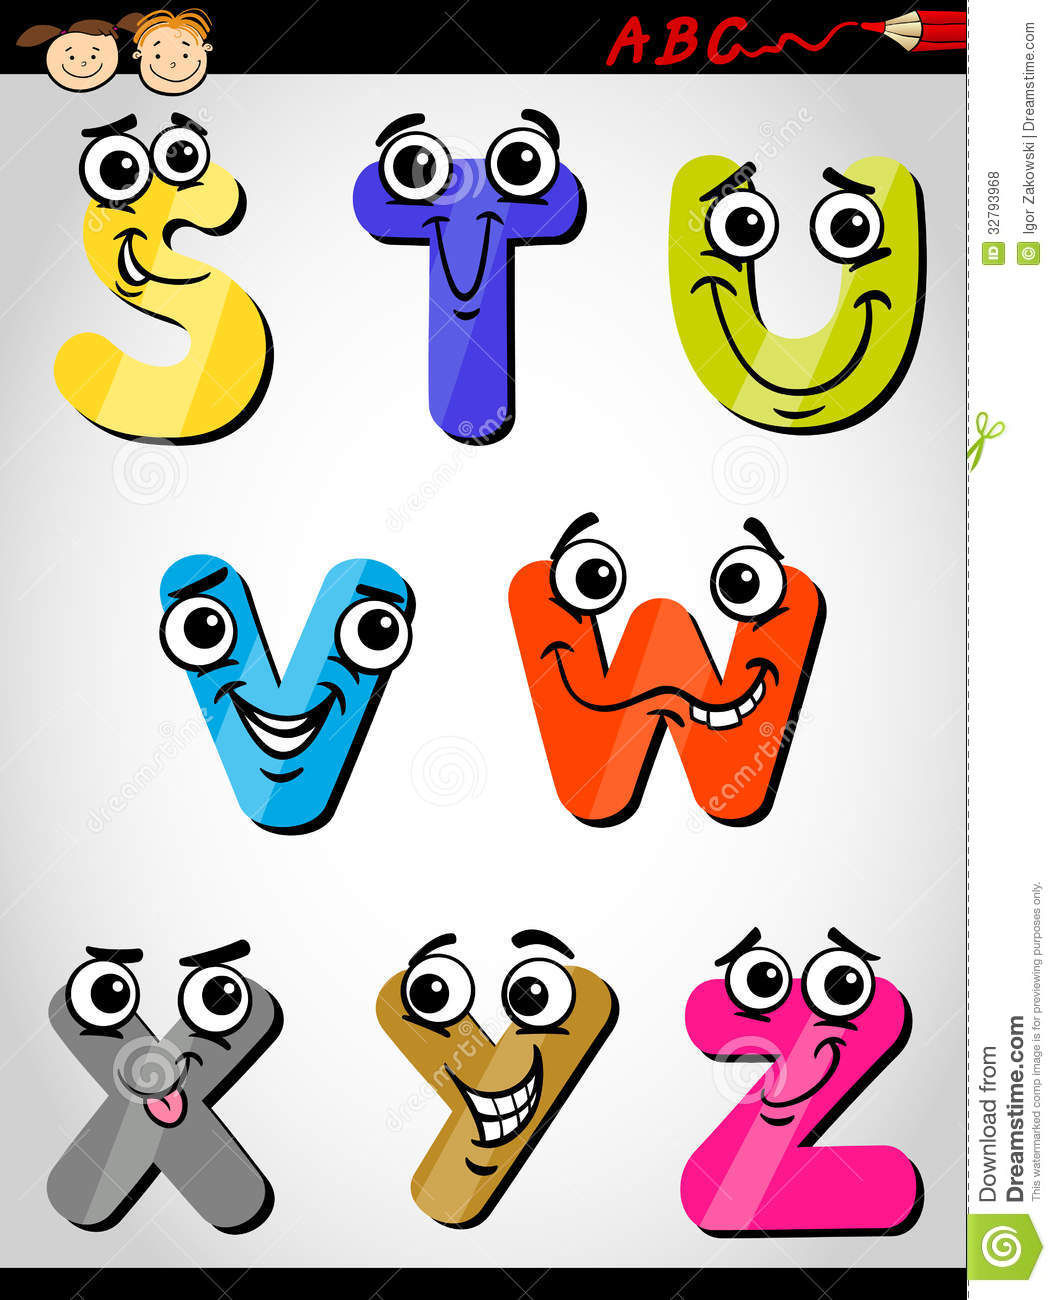 9 Letter Cartoon Characters : Comic letters alphabet cartoon illustration stock vector